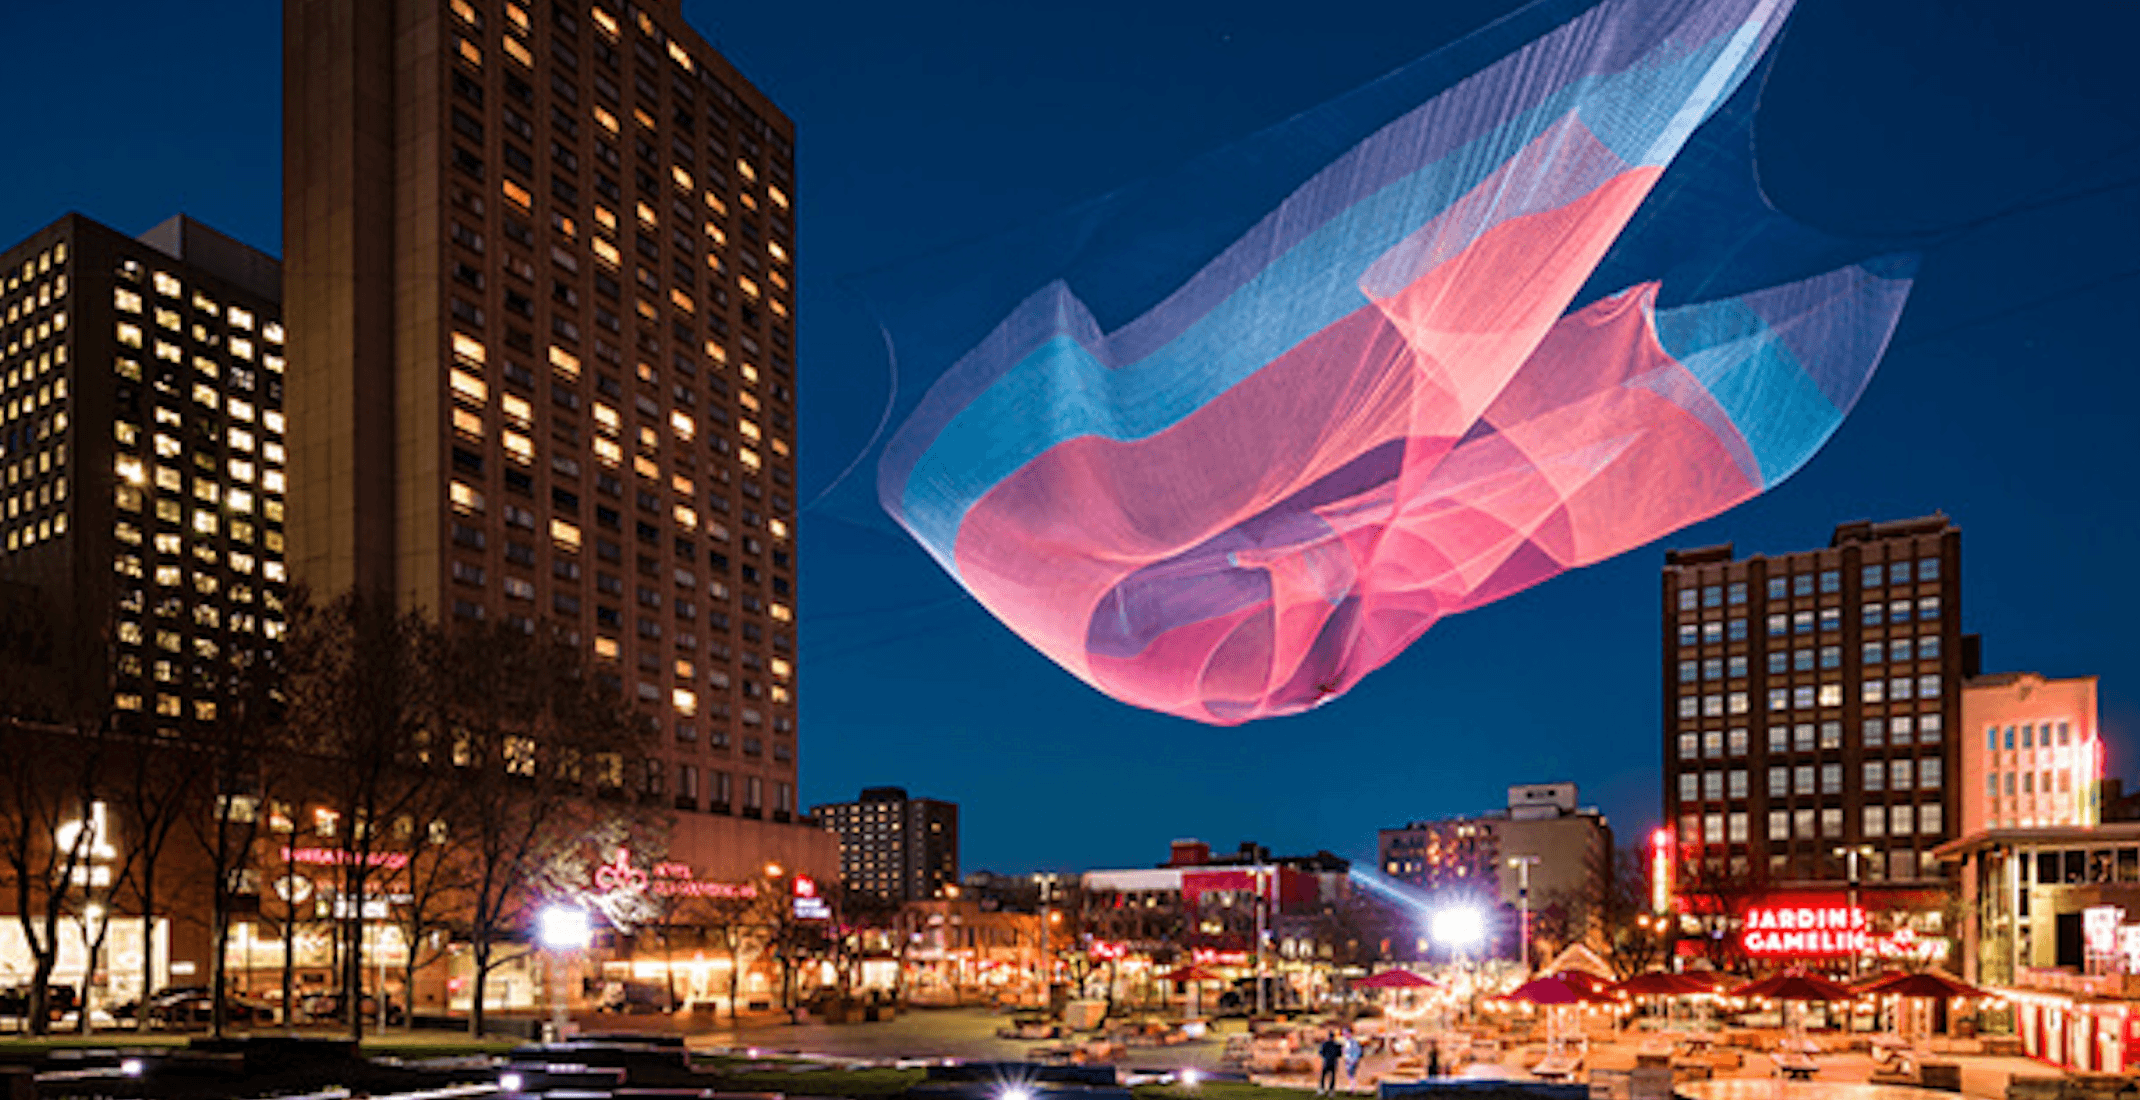 A mesmerizing art installation will light up over Place Émilie-Gamelin this spring (PHOTOS)